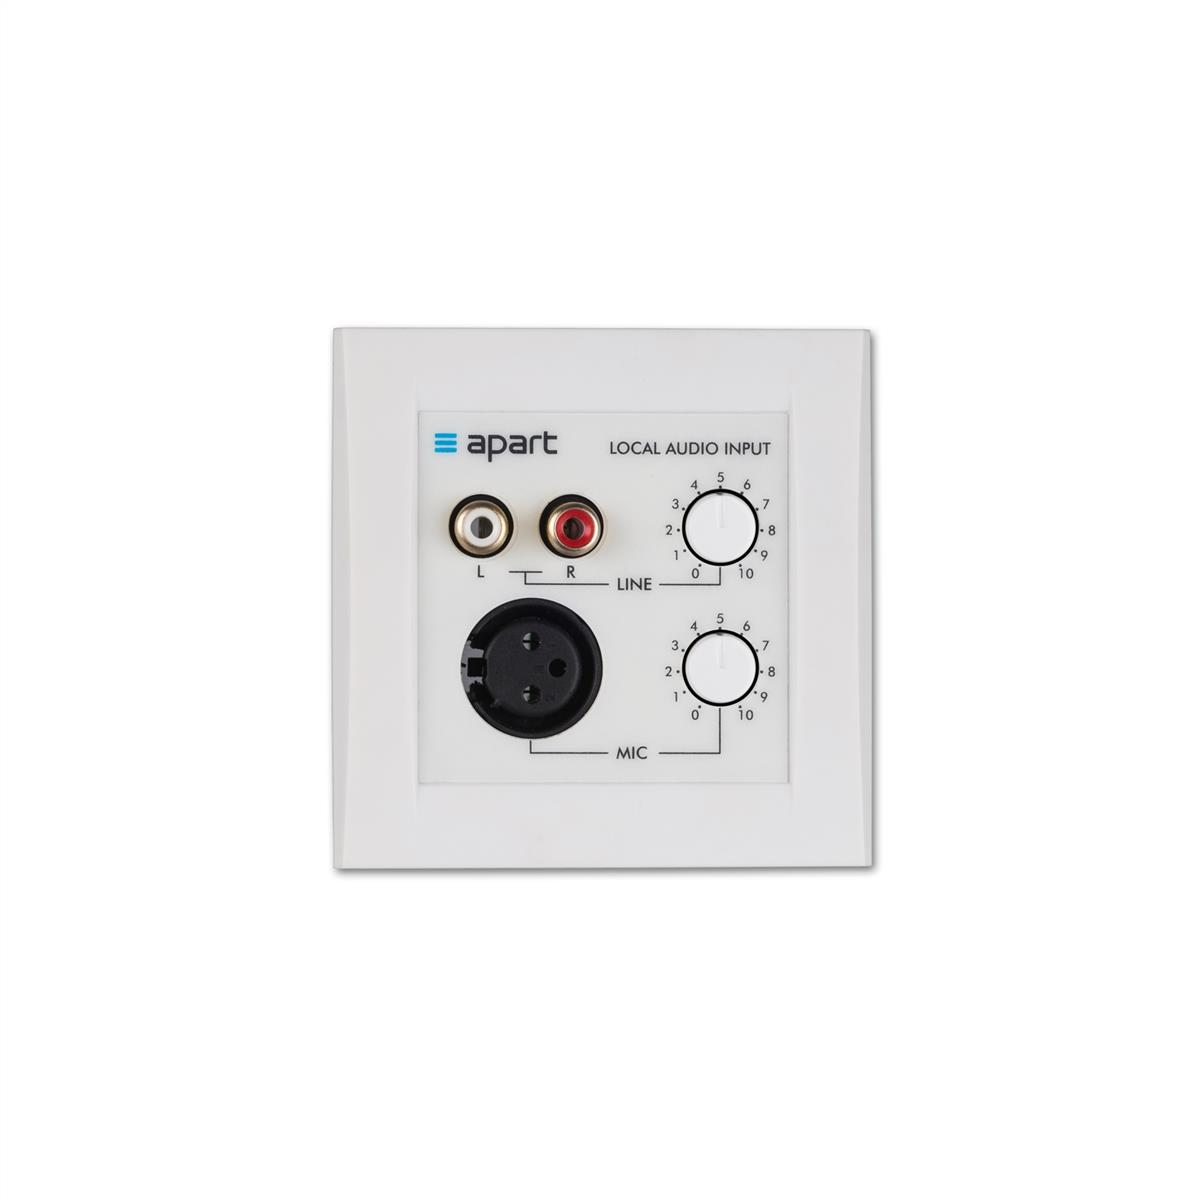 Apart lokal input med mic for 12-8, PM1122, Zone4, MA247-MR